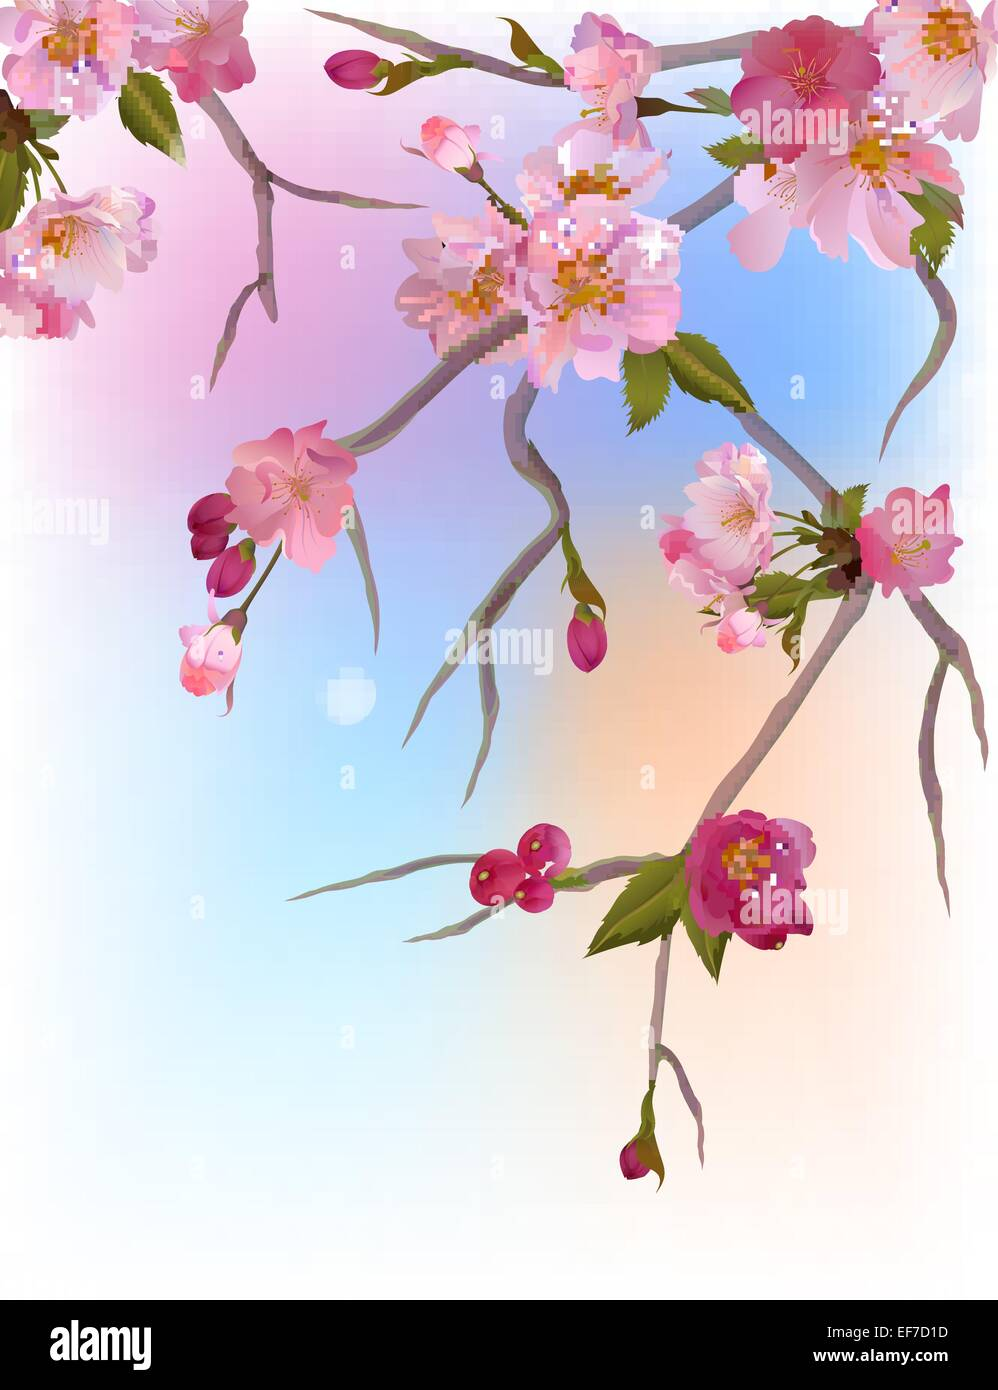 Vector background with gentle sakura branches of flowers - Stock Vector